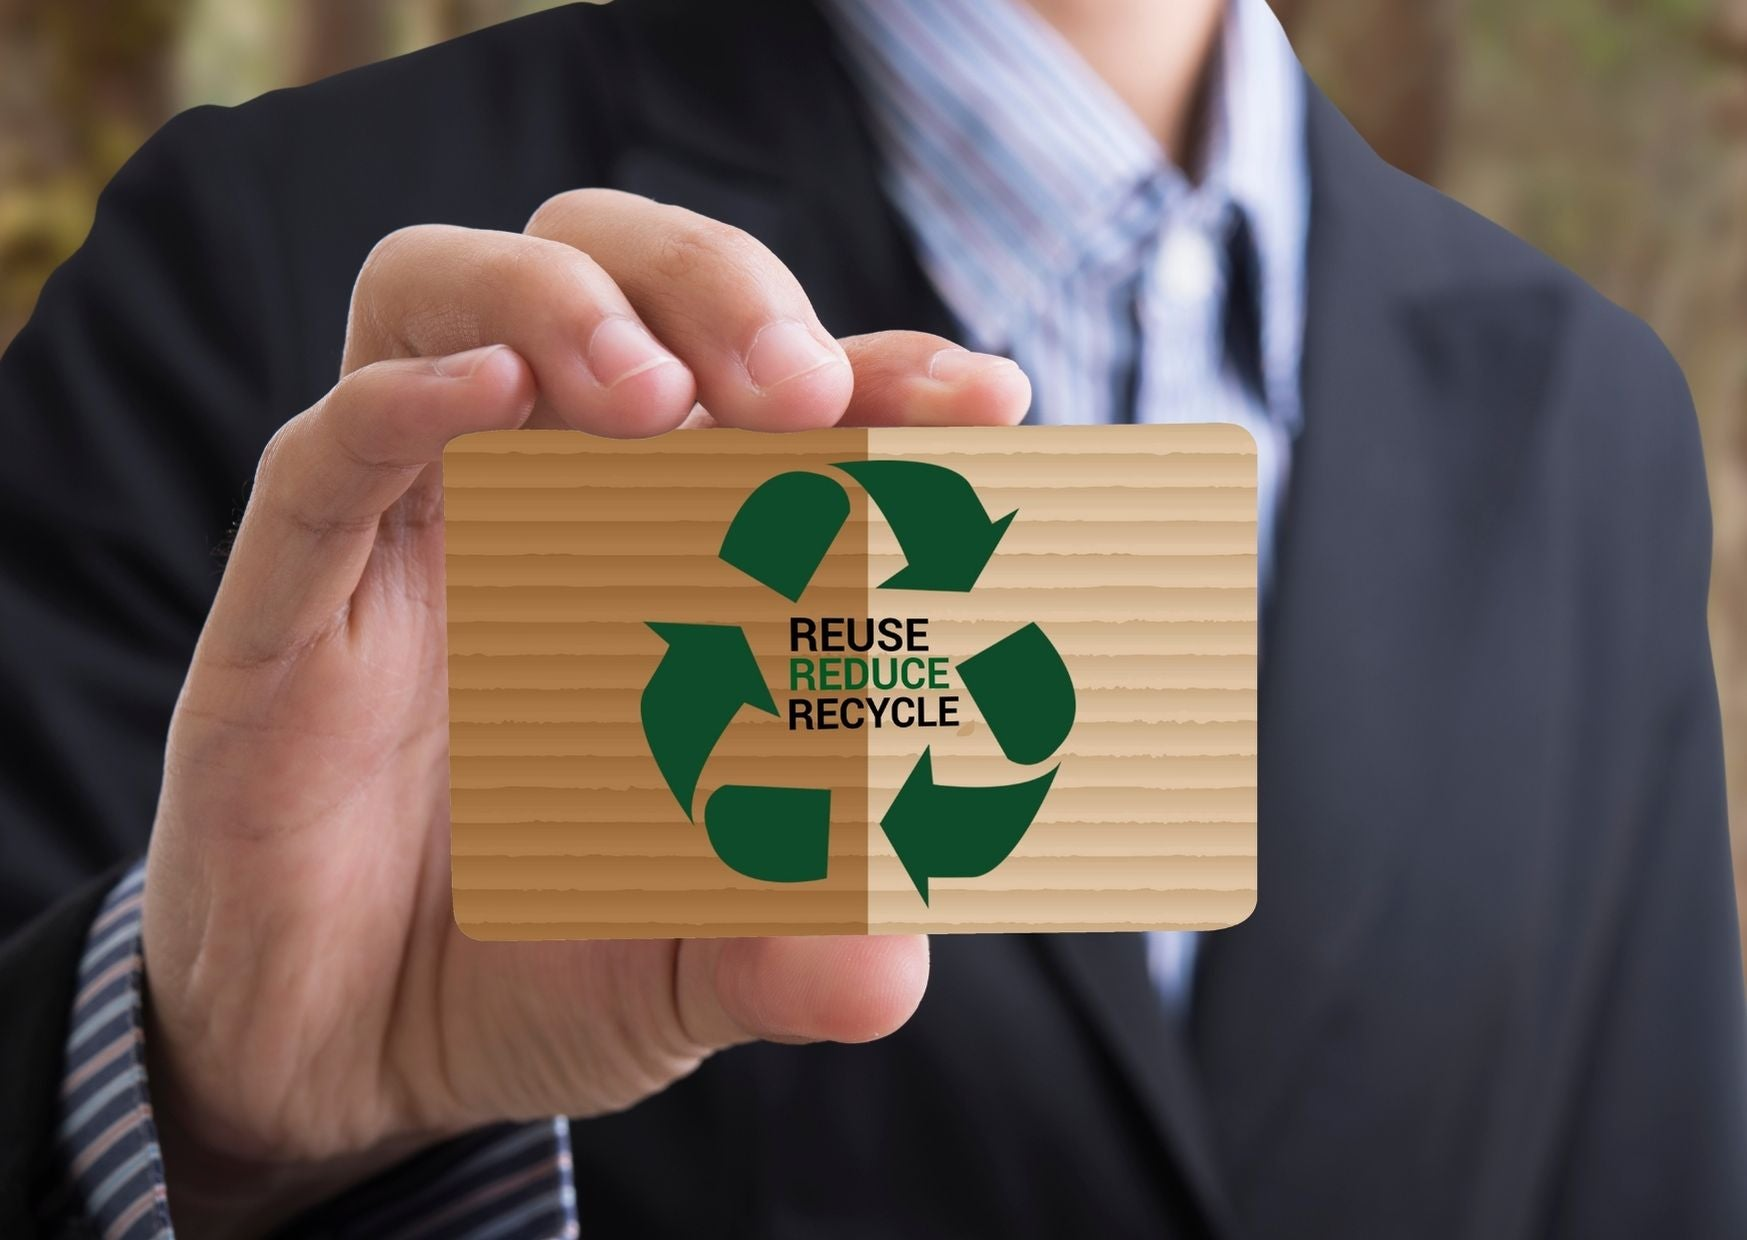 Reduce Reuse Recycle | SR Mailing Ltd